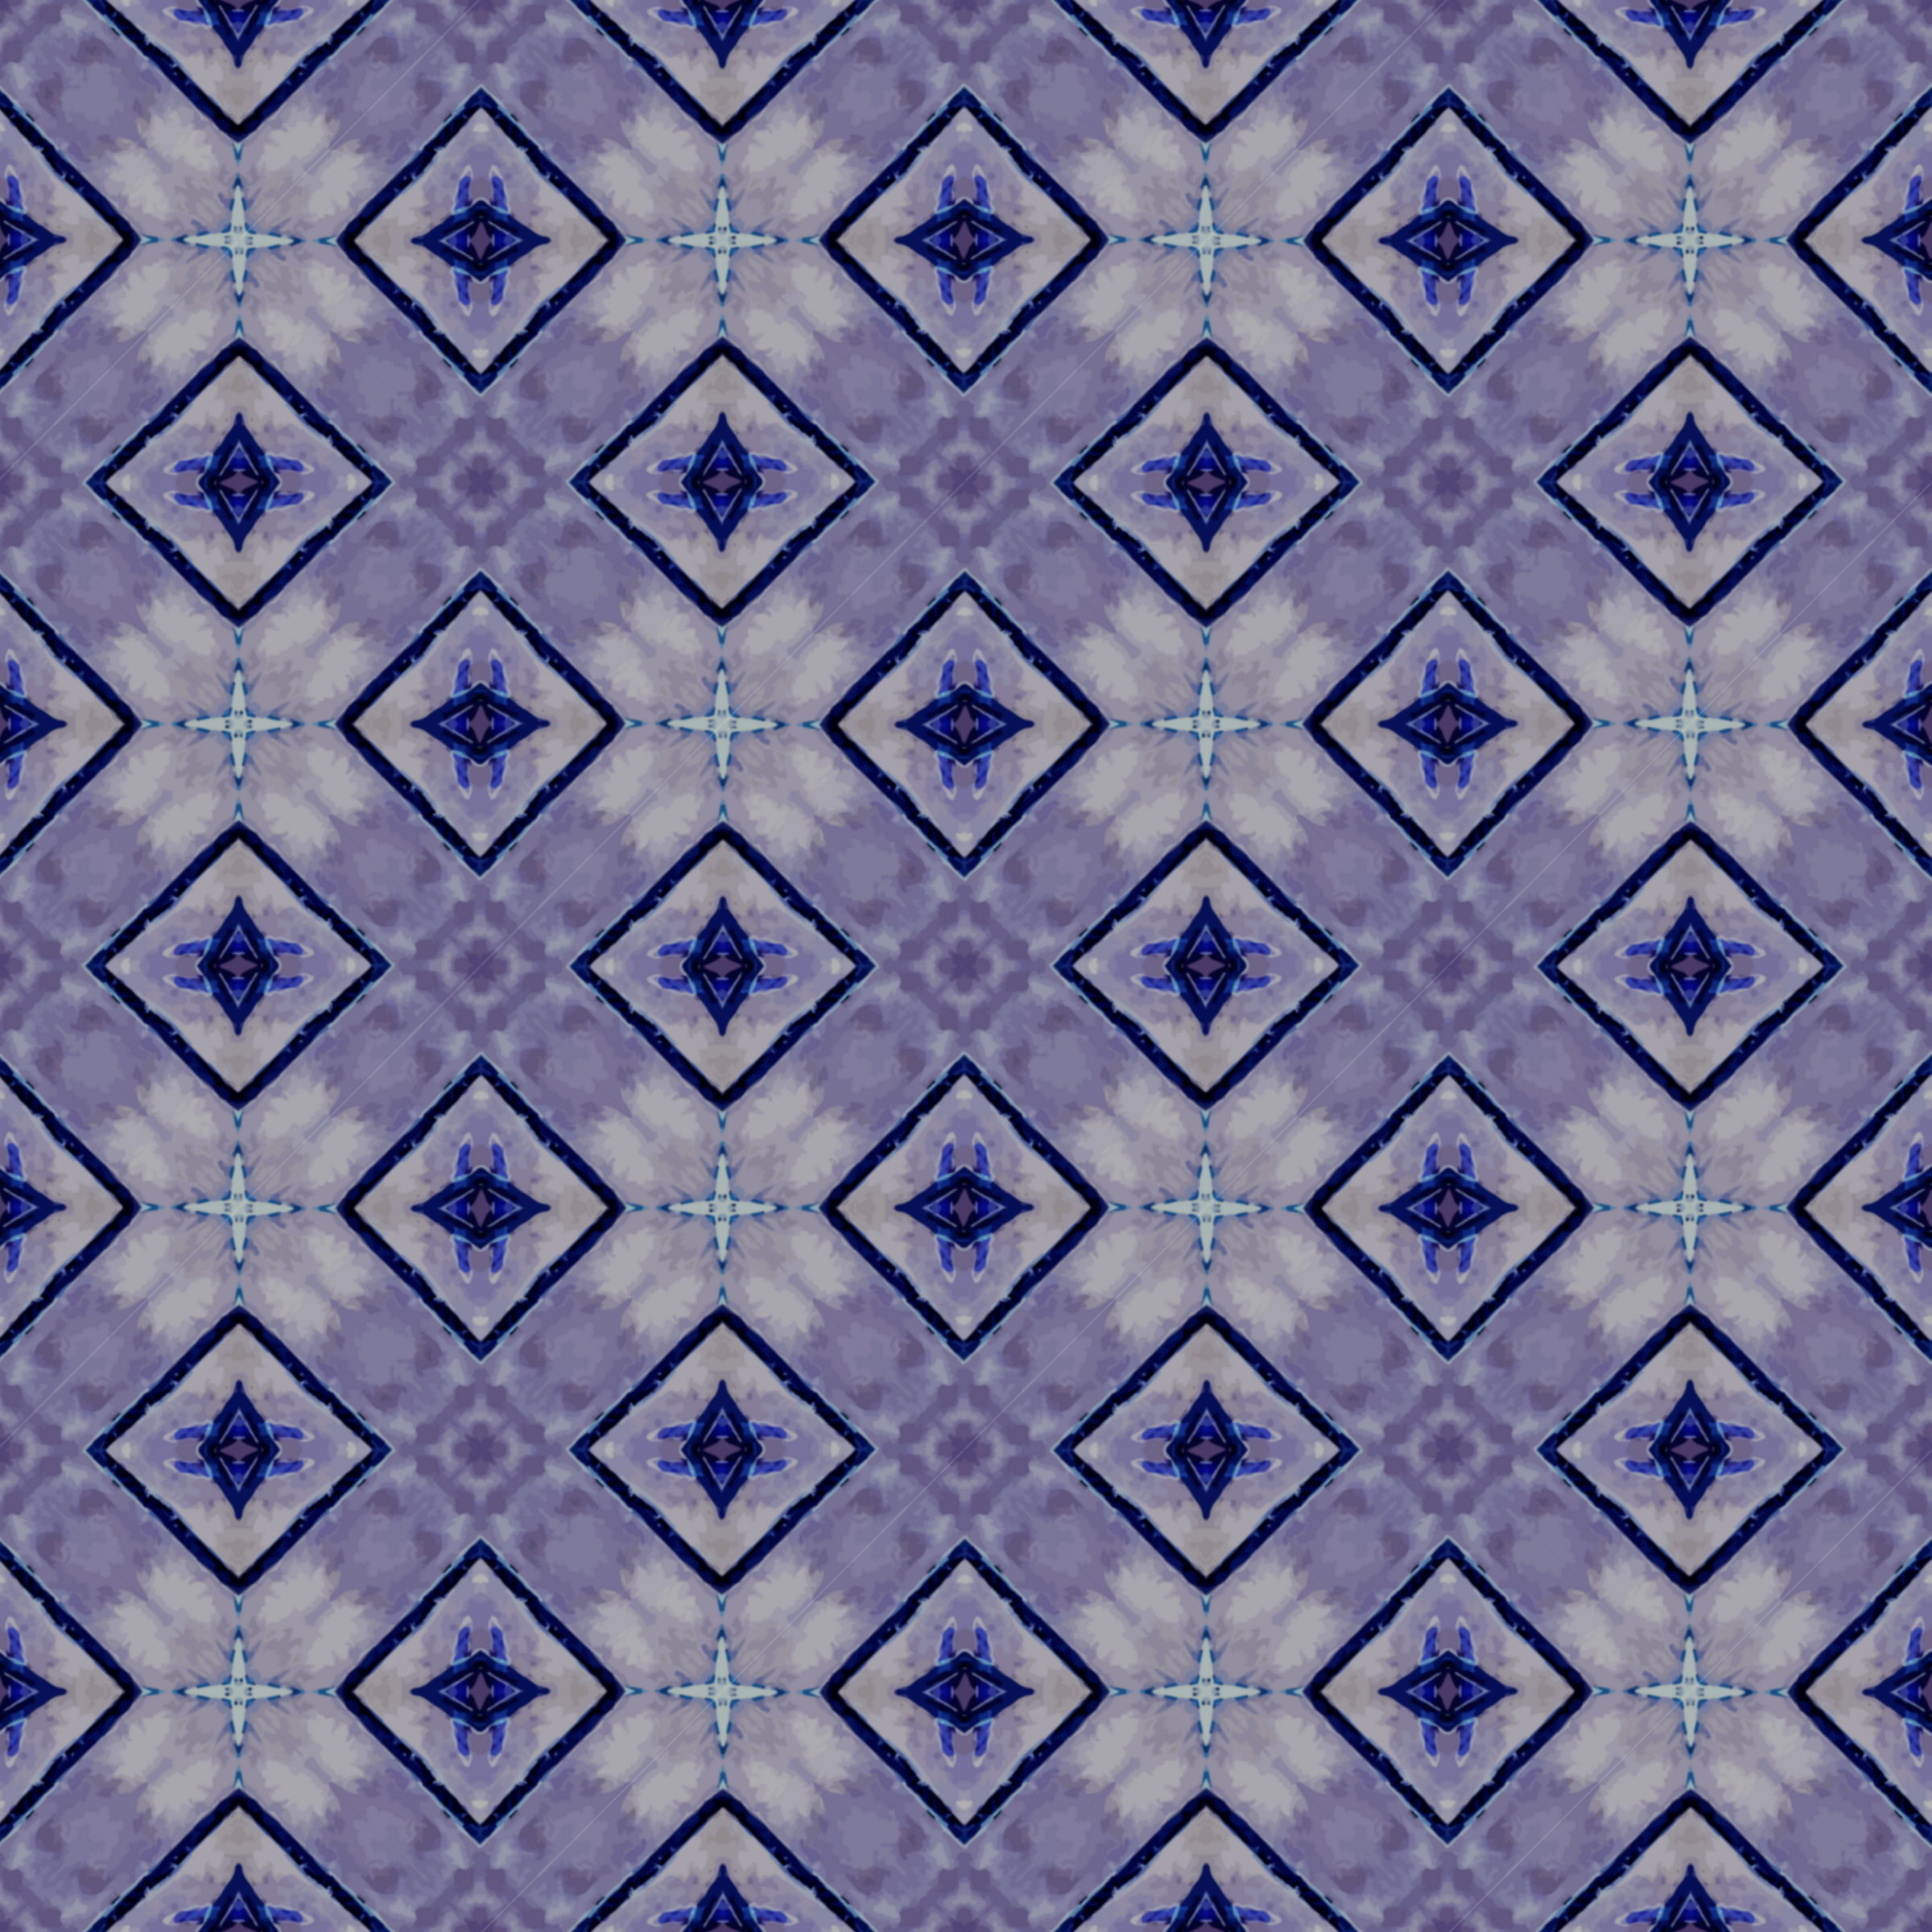 Background pattern 184 (colour 5) by Firkin